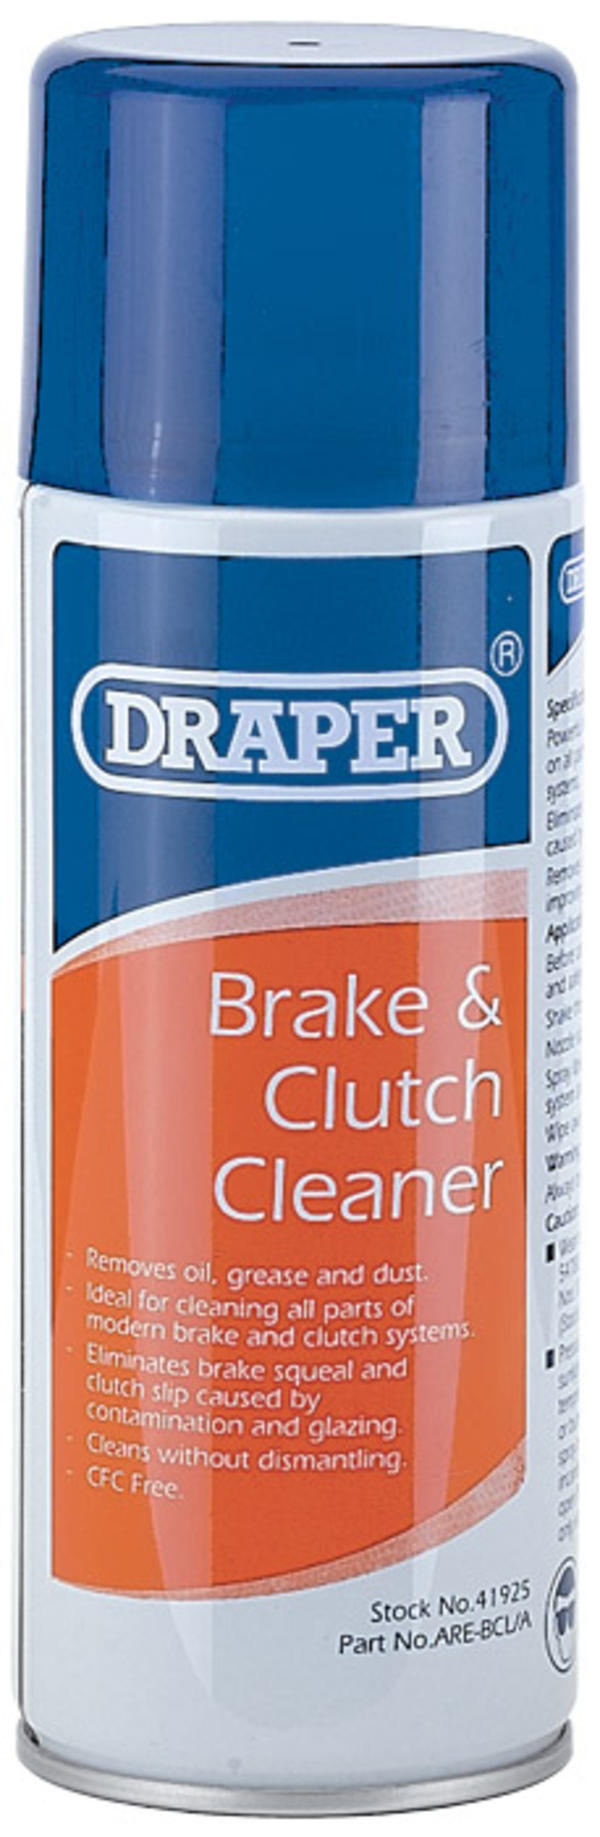 Draper 41925 ARE-BCL/A 400Ml Brake & Clutch Cleaner Spray Thumbnail 2